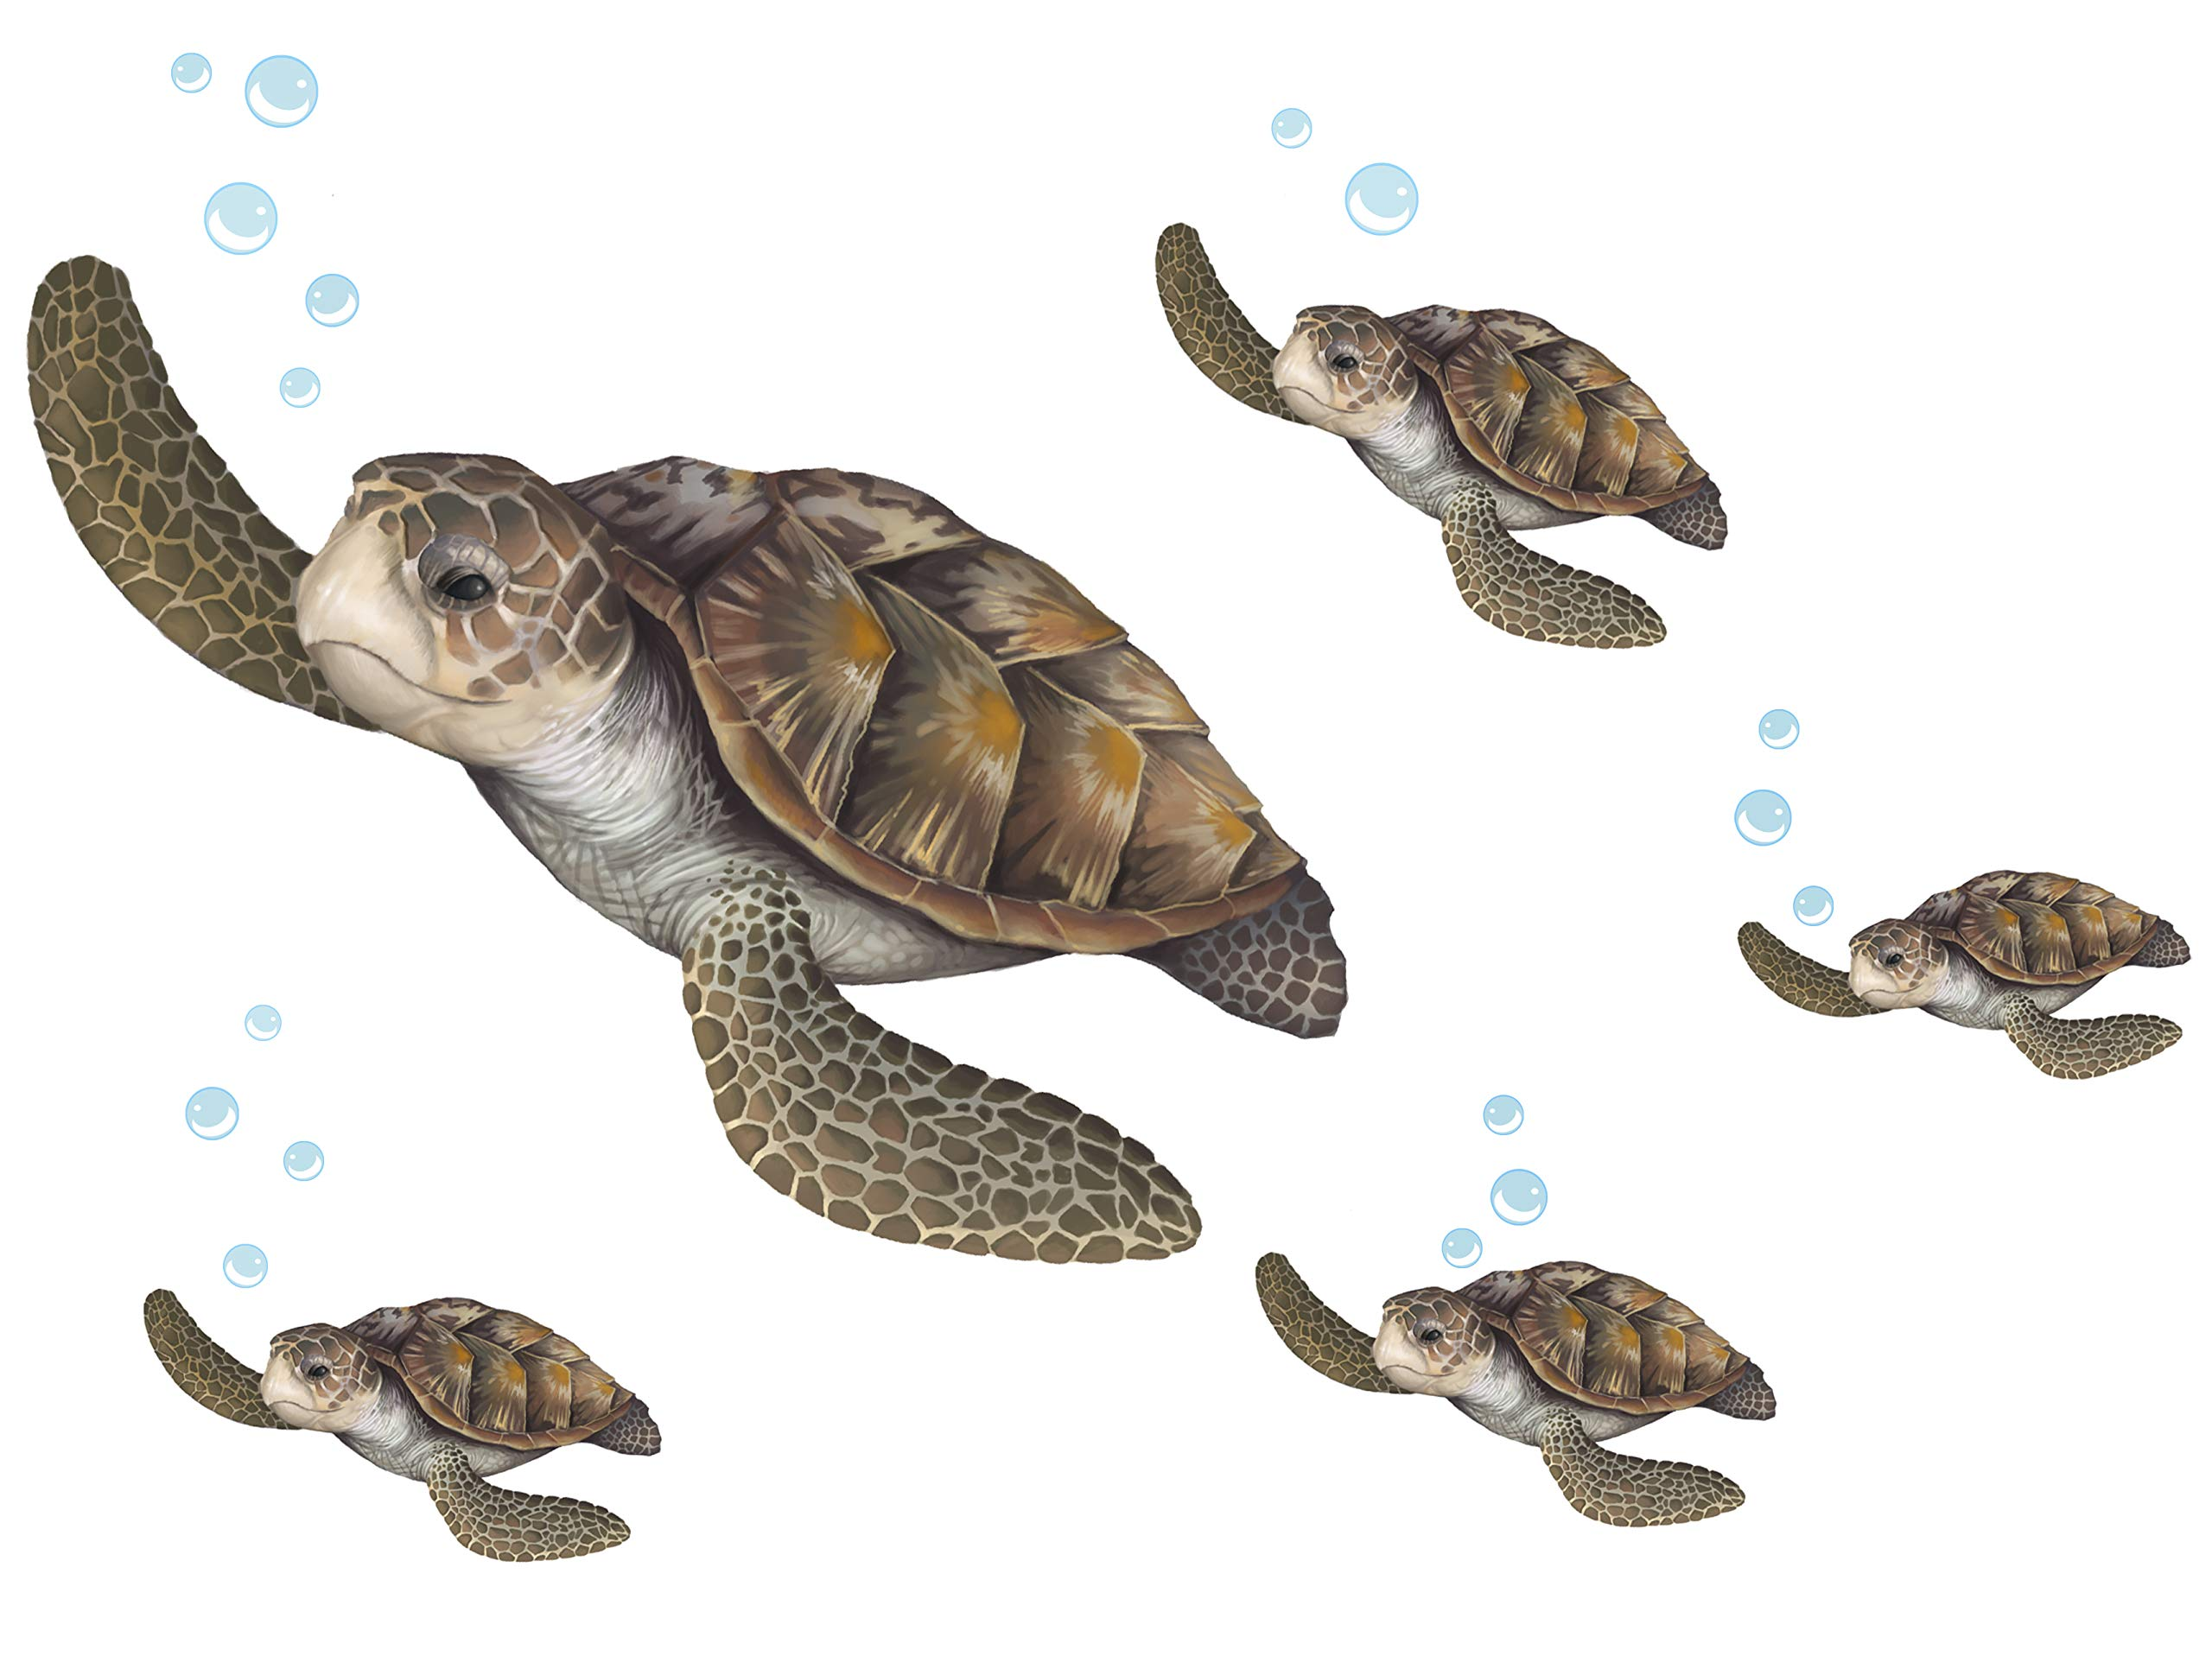 Create-A-Mural : Sea Turtle Family Wall Decals ~Under The Sea Decor Wall Stickers, Underwater Ocean Decals for Walls, Peel n Stick Room Decor by Create-A-Mural